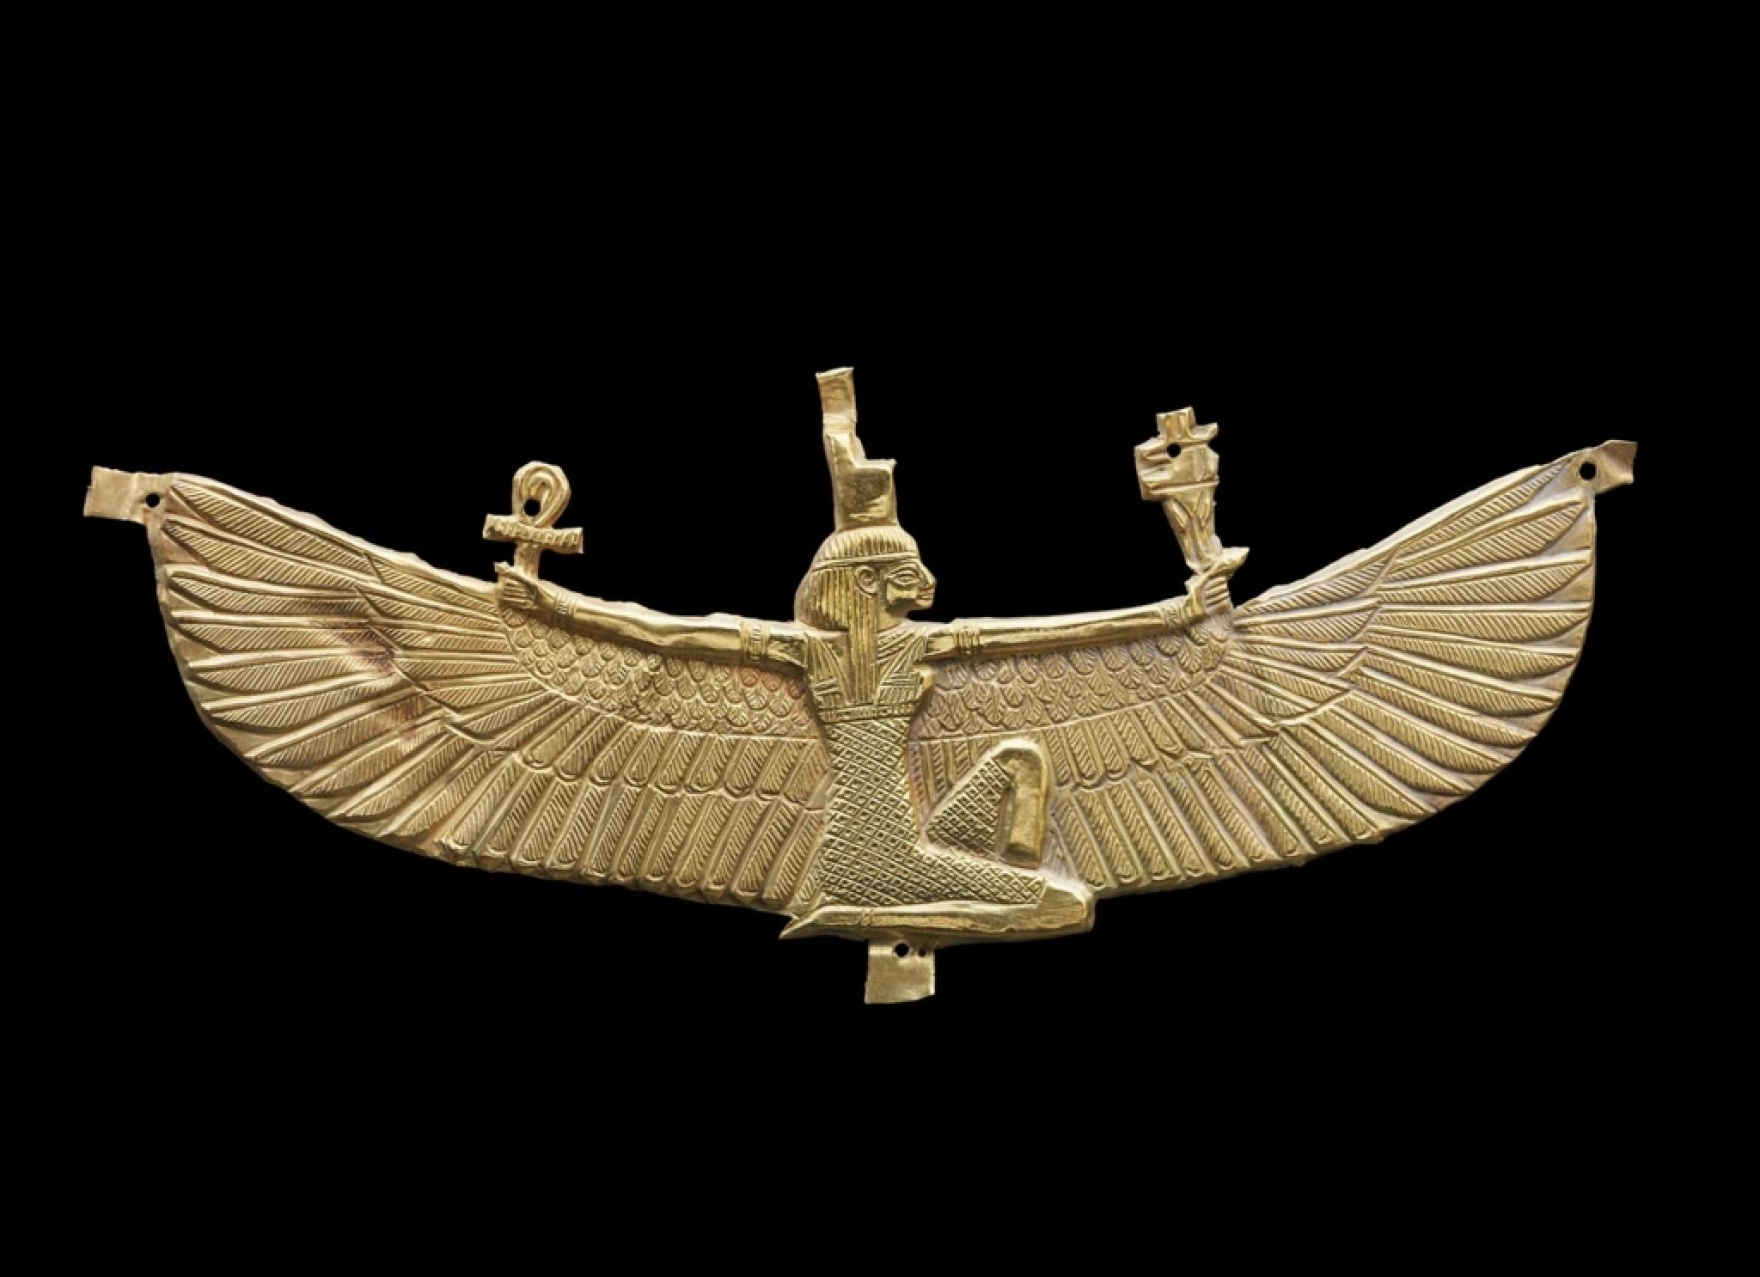 Nubian period gold pectoral representing the winged goddess Isis